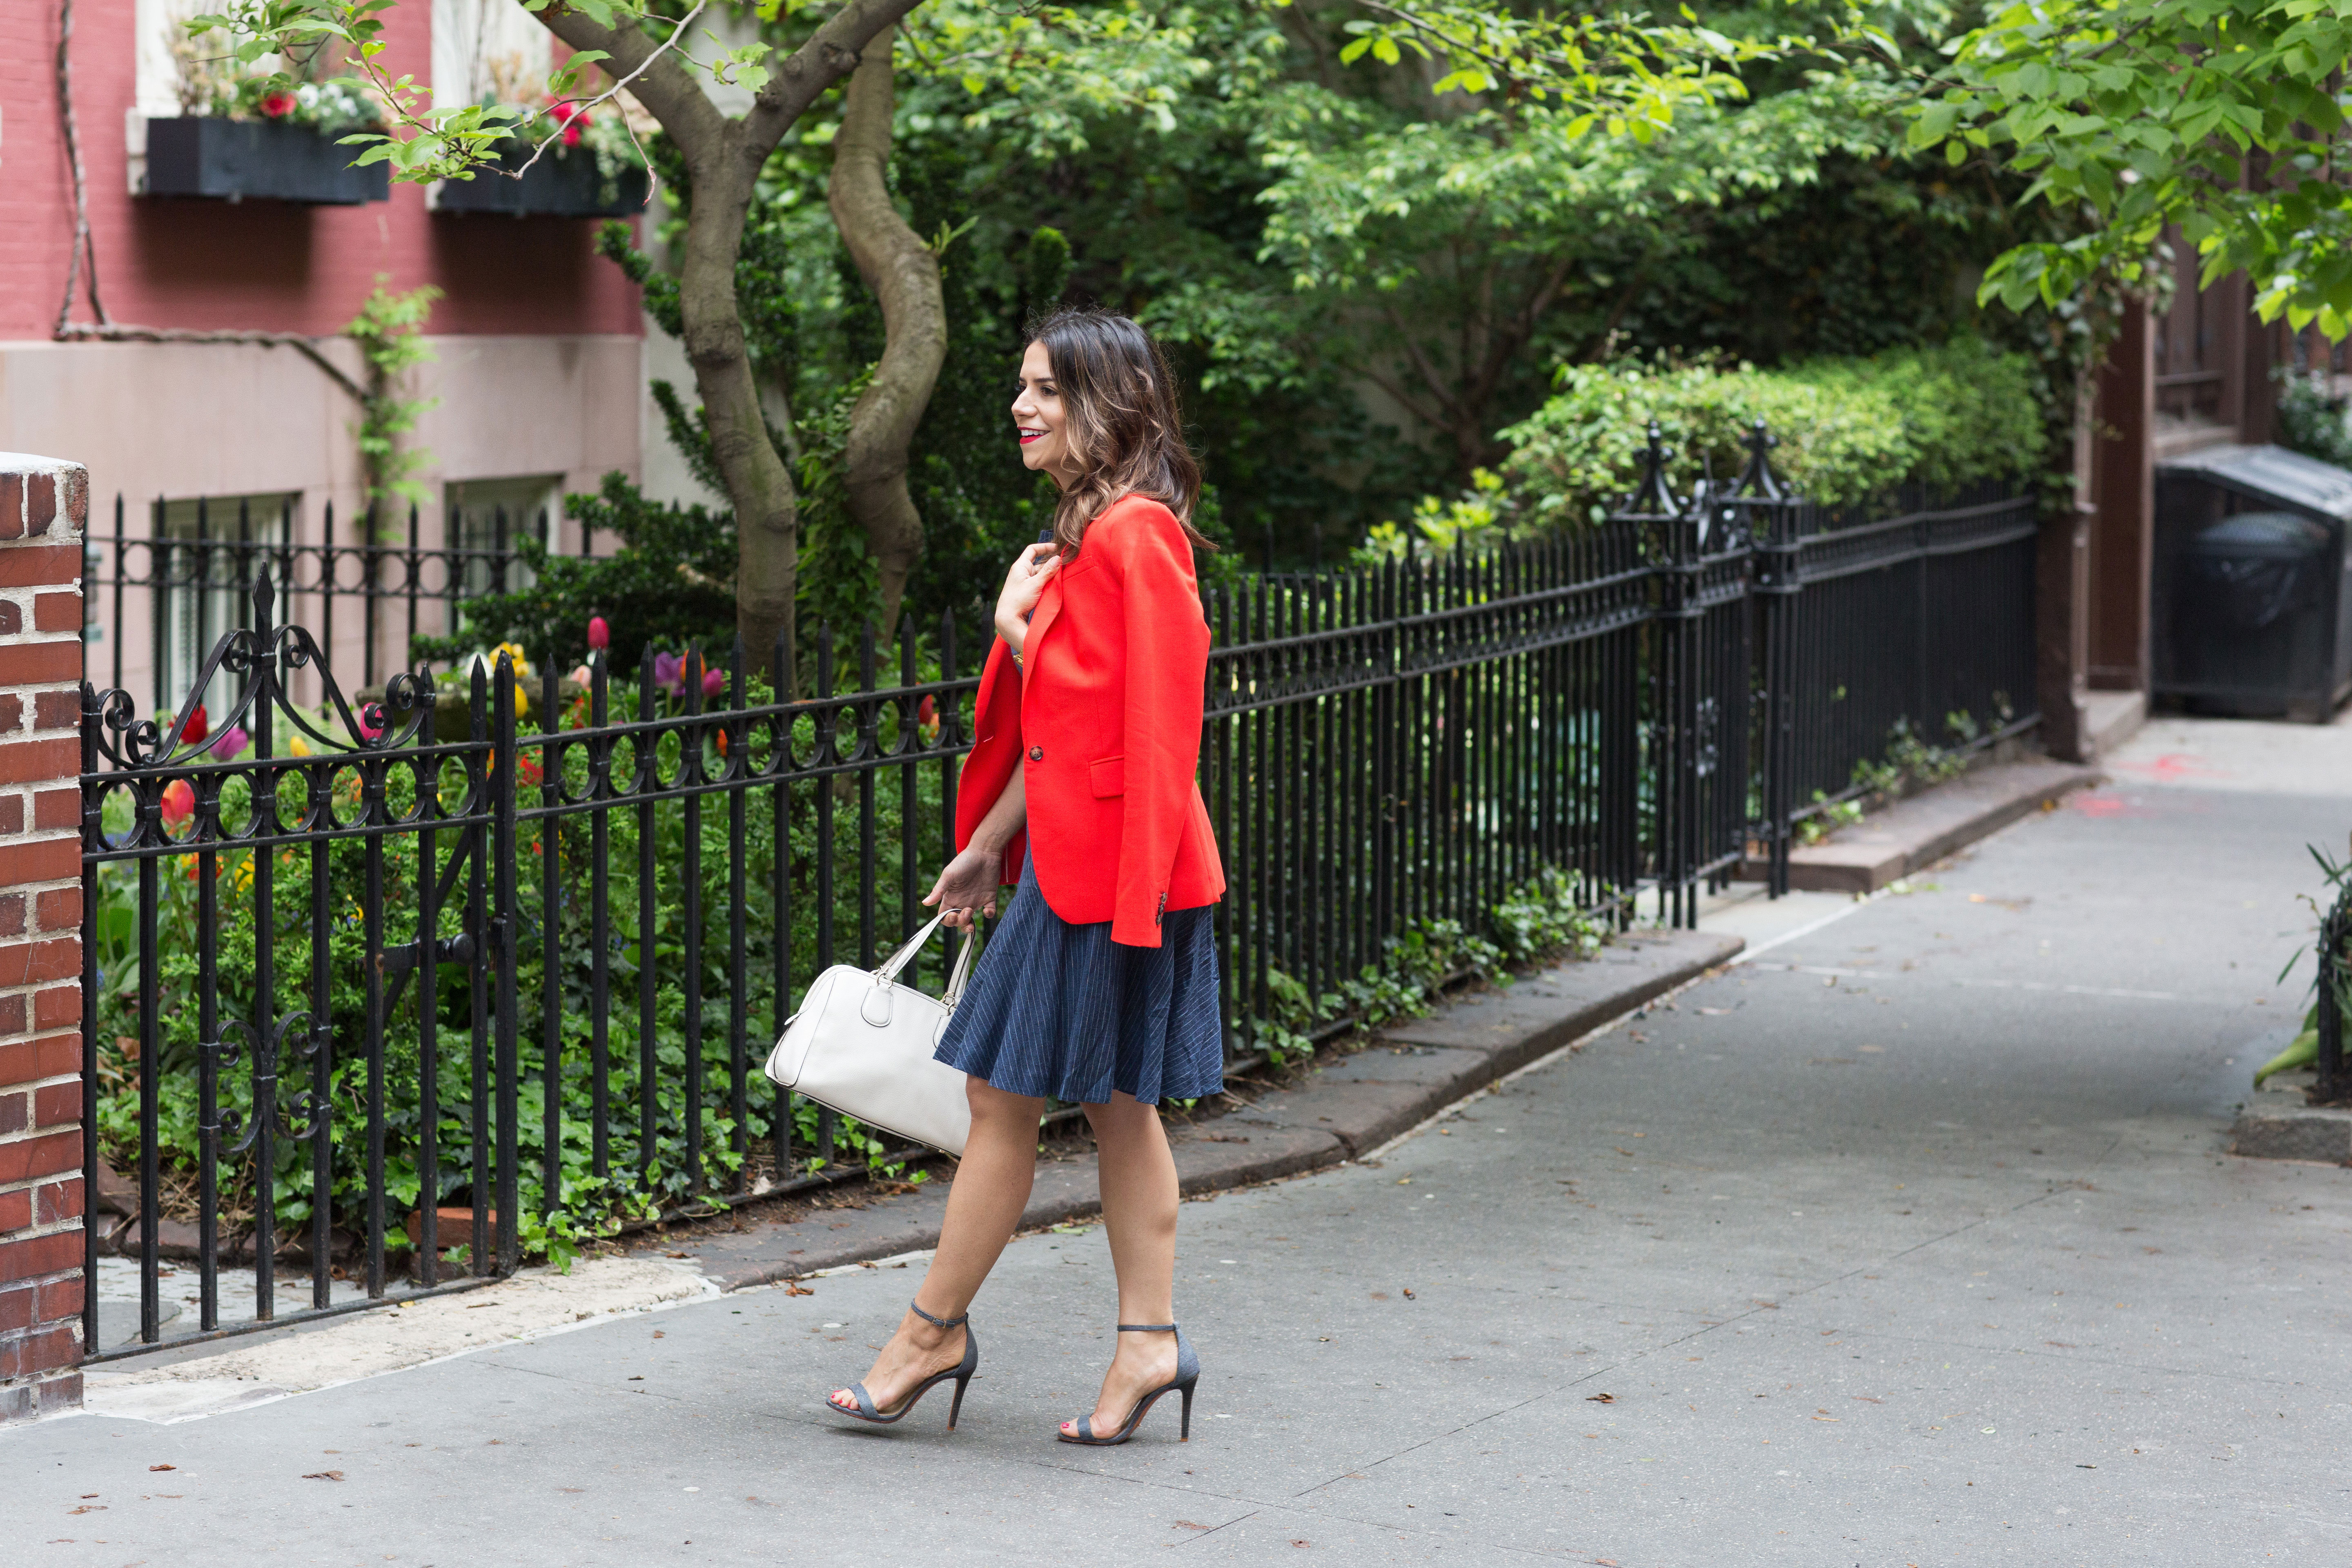 workwear-outfit-for-spring-wearing-Banana-Republic-Red-Blazer-with-denim-dress-and-white-coach-purse2